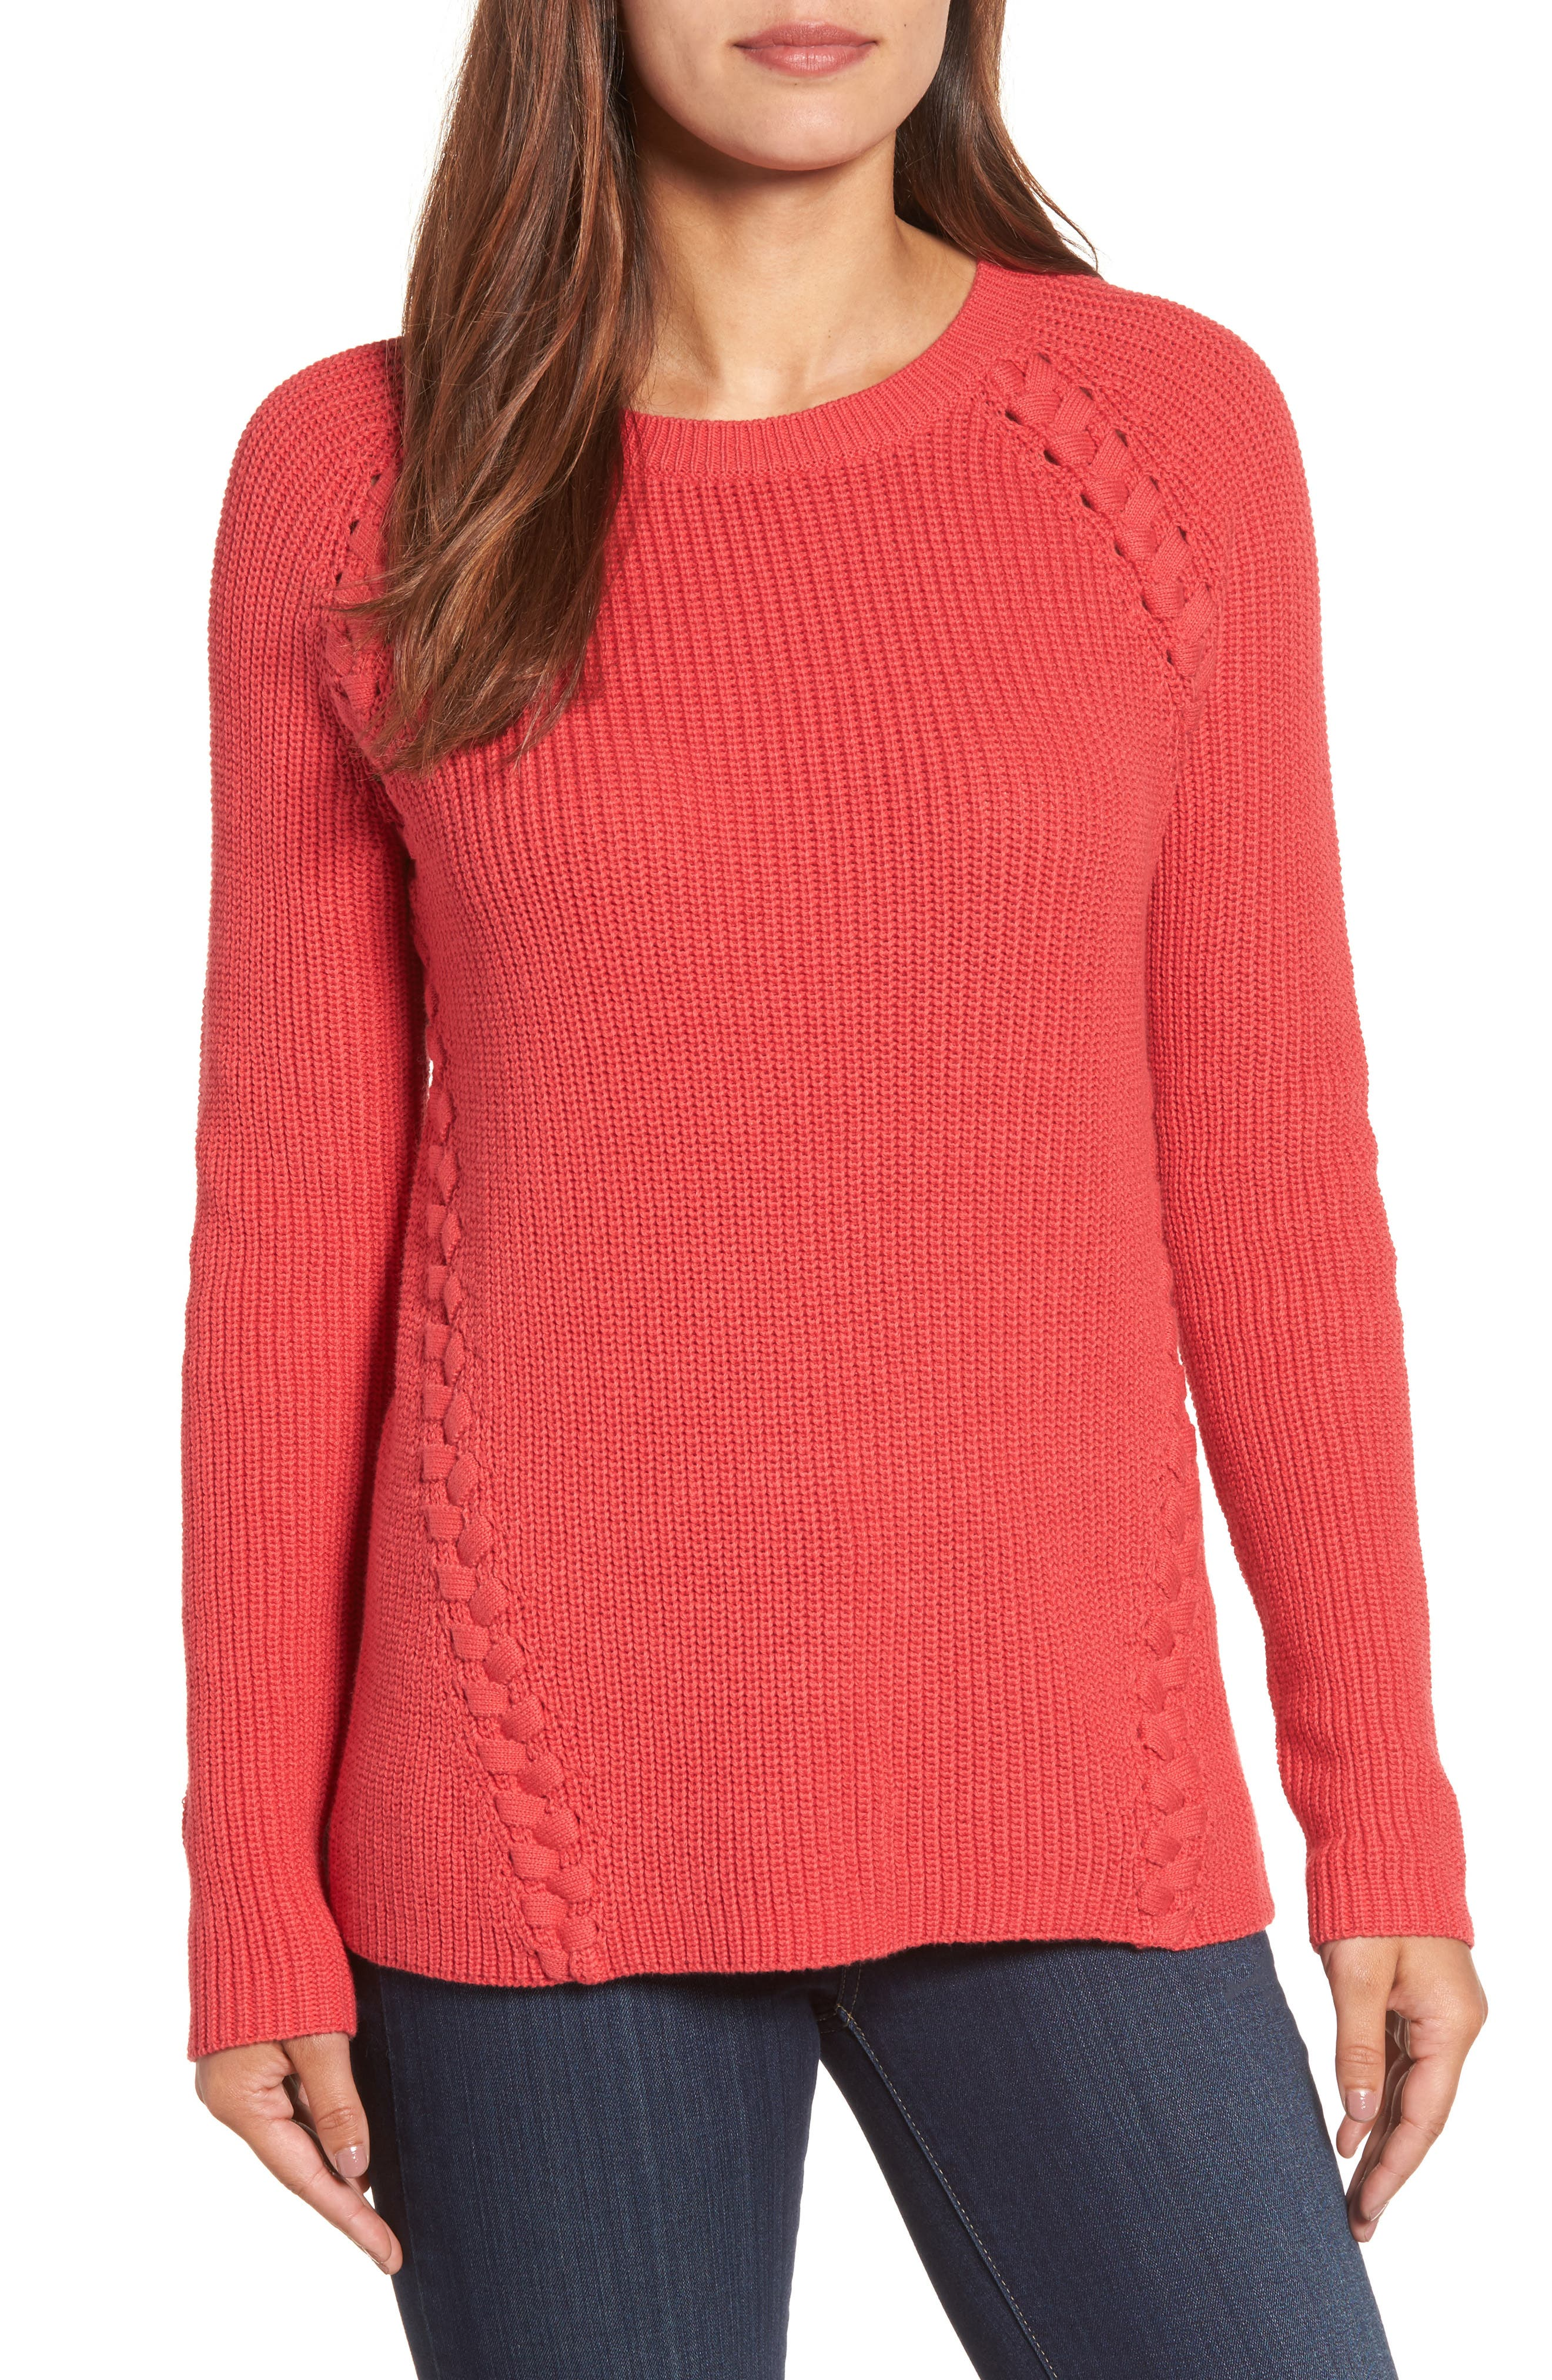 Alternate Image 1 Selected - Halogen® Lace-Up Sweater (Regular & Petite)